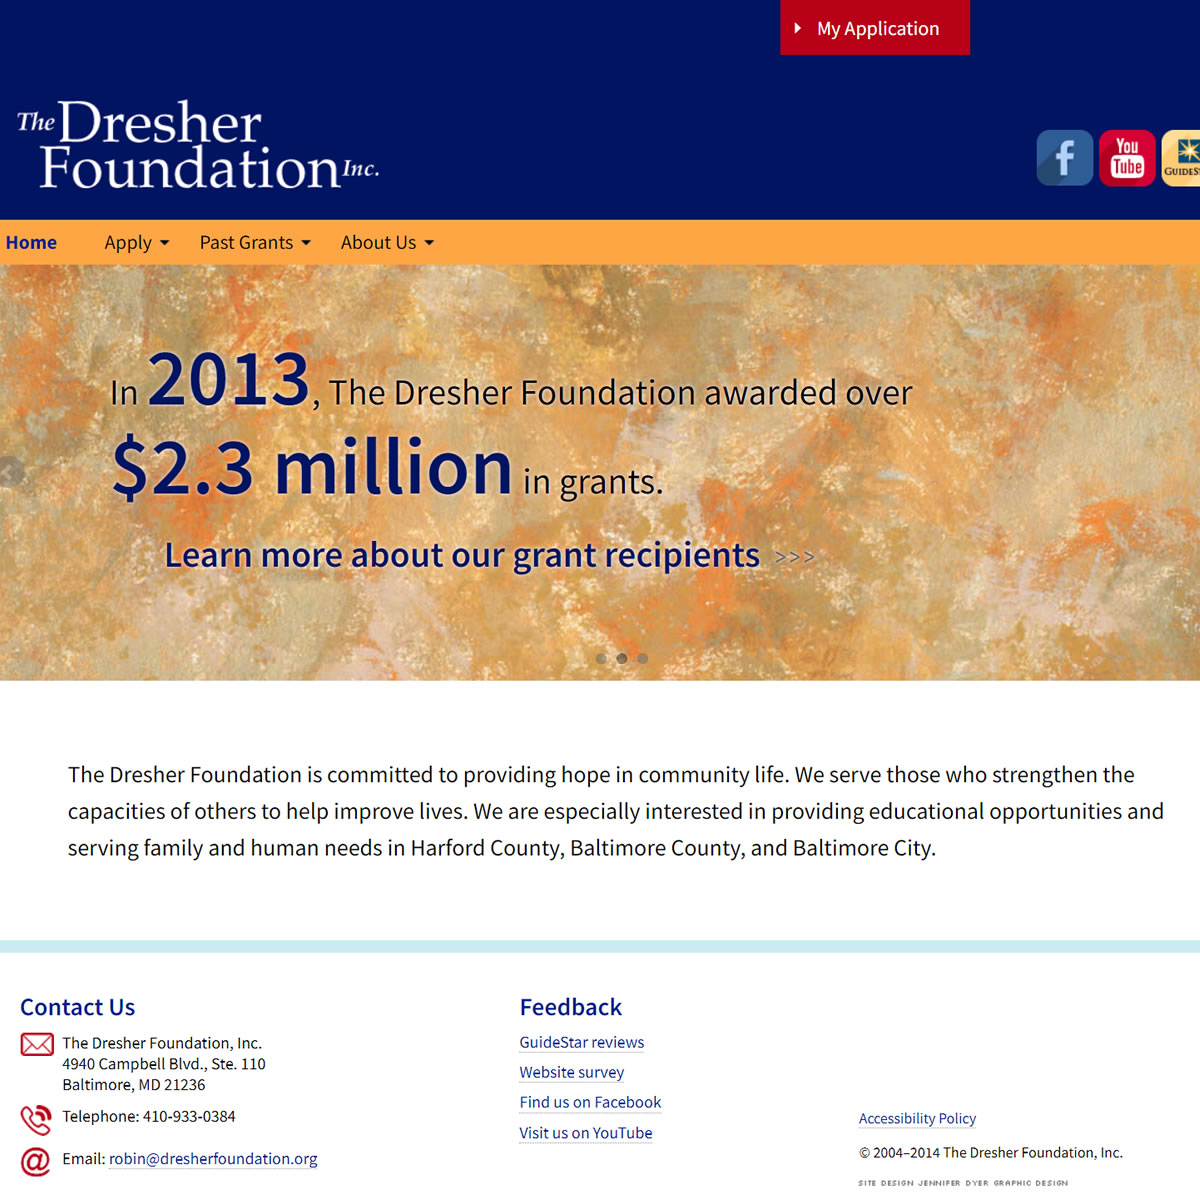 The Dresher Foundation Website